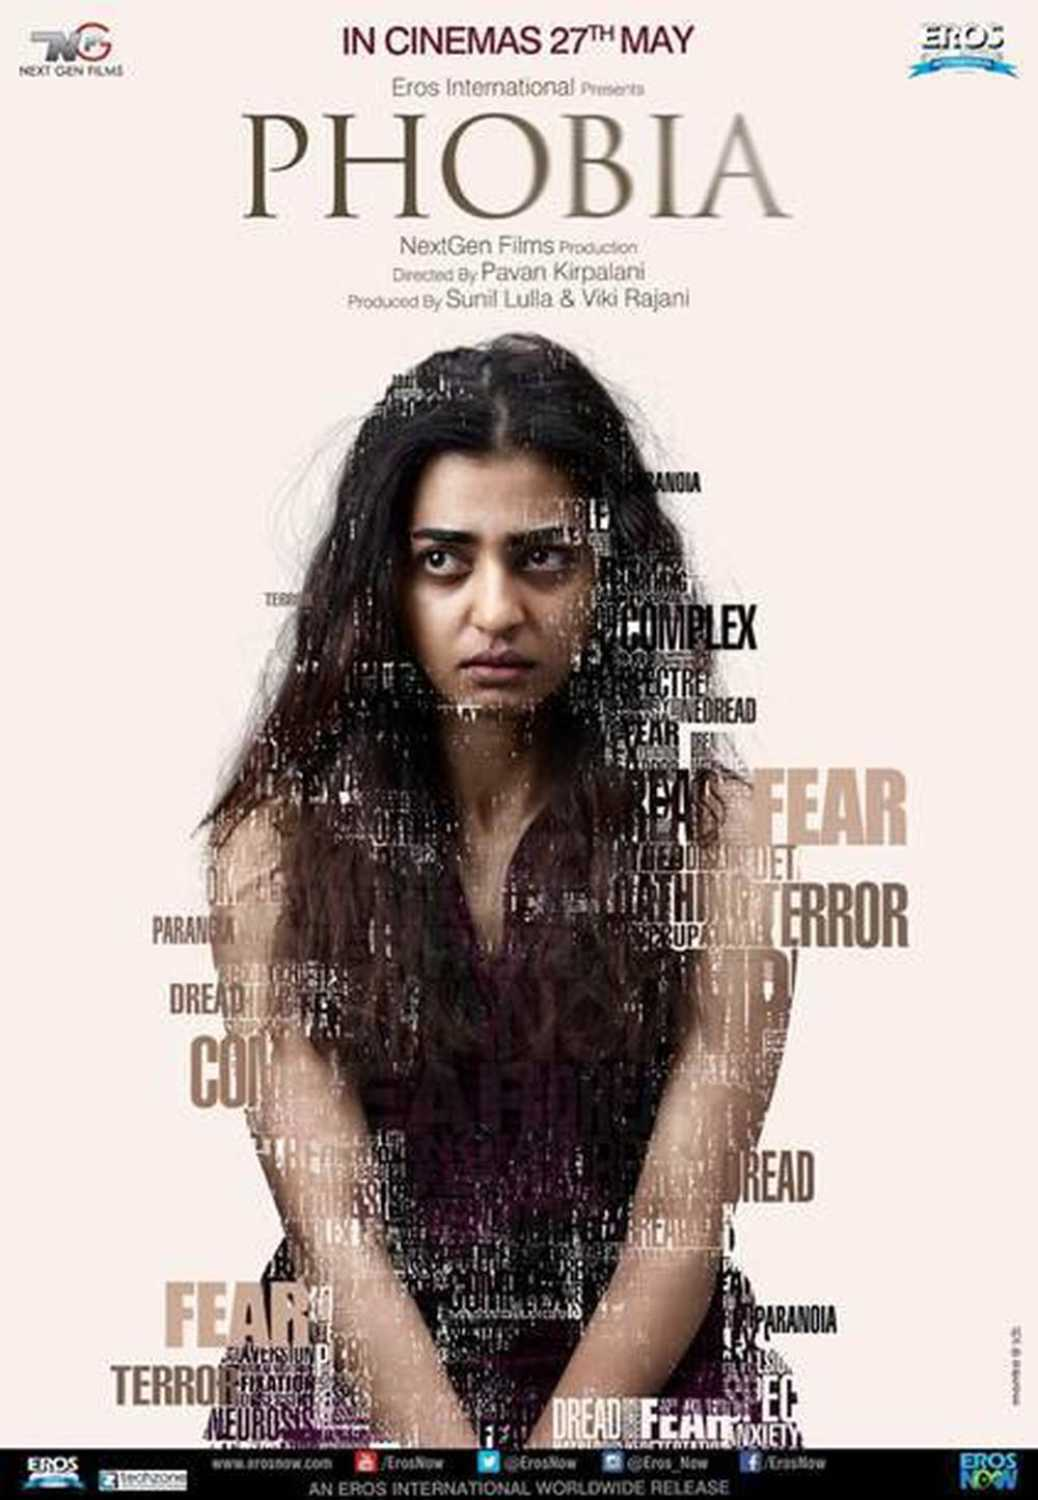 Phobia (2016) - Review, Star Cast, News, Photos | Cinestaan